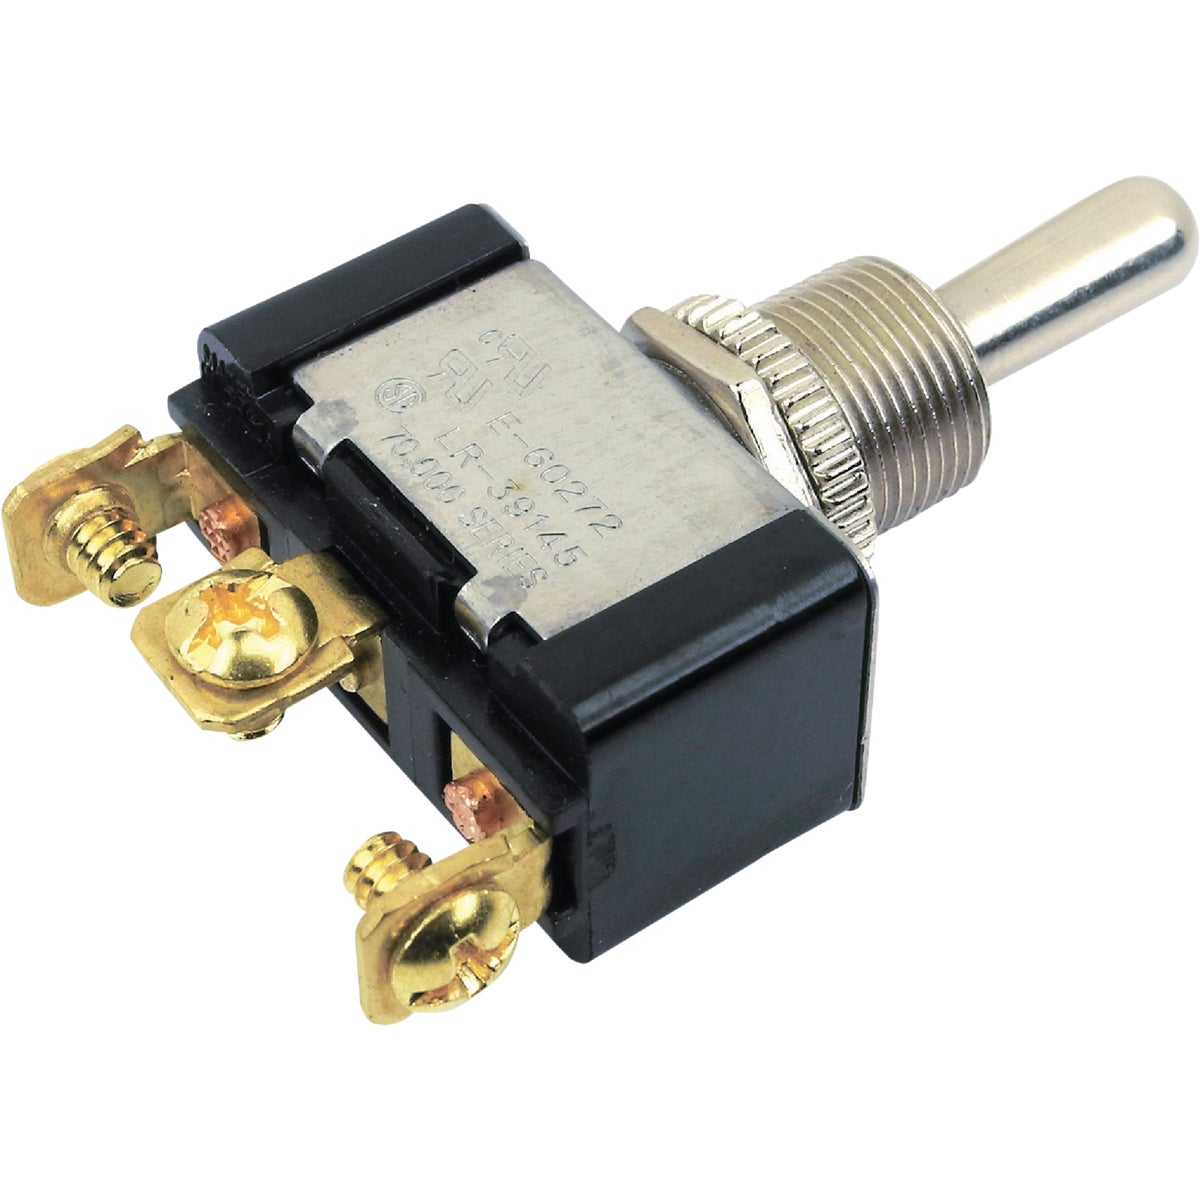 3POS TOGGLE SWITCH - 12121 by Seachoice Prod